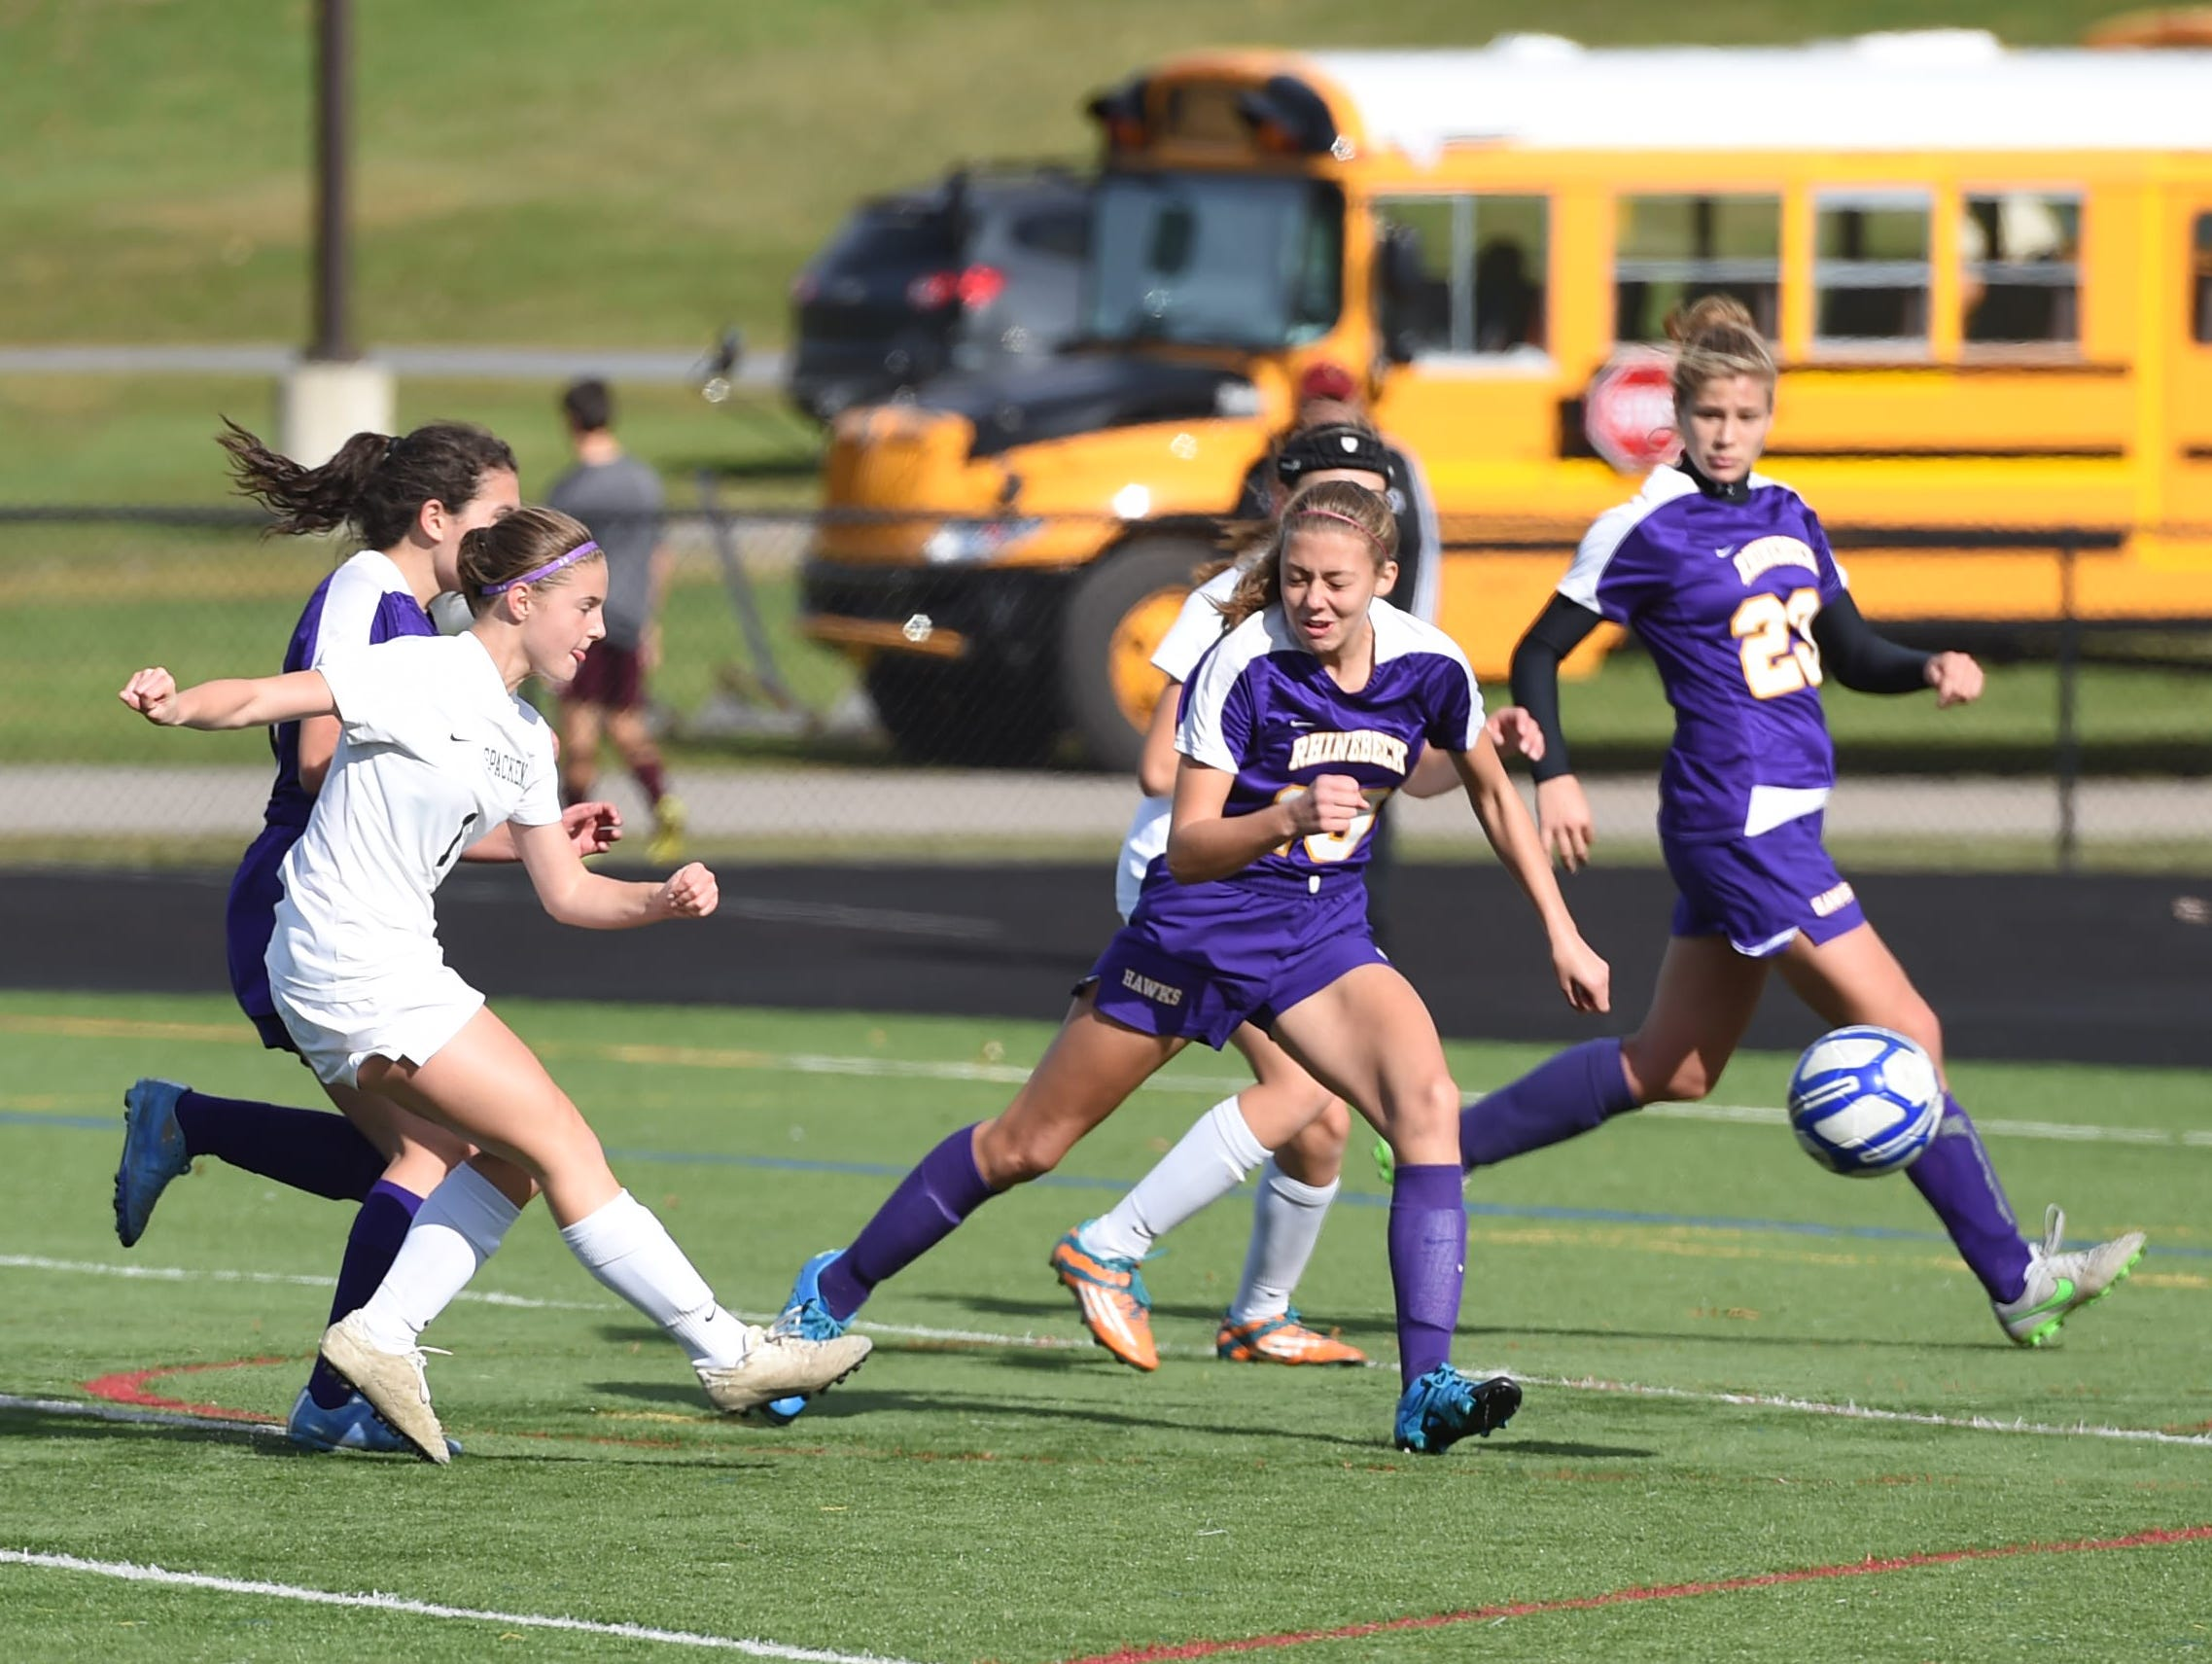 Spackenkill's Maria Barefoot shoots the ball past Rhinebeck's Amber Hoglin to score the game's winning point during the Section 9 Class C final held in Marlboro on Saturday.